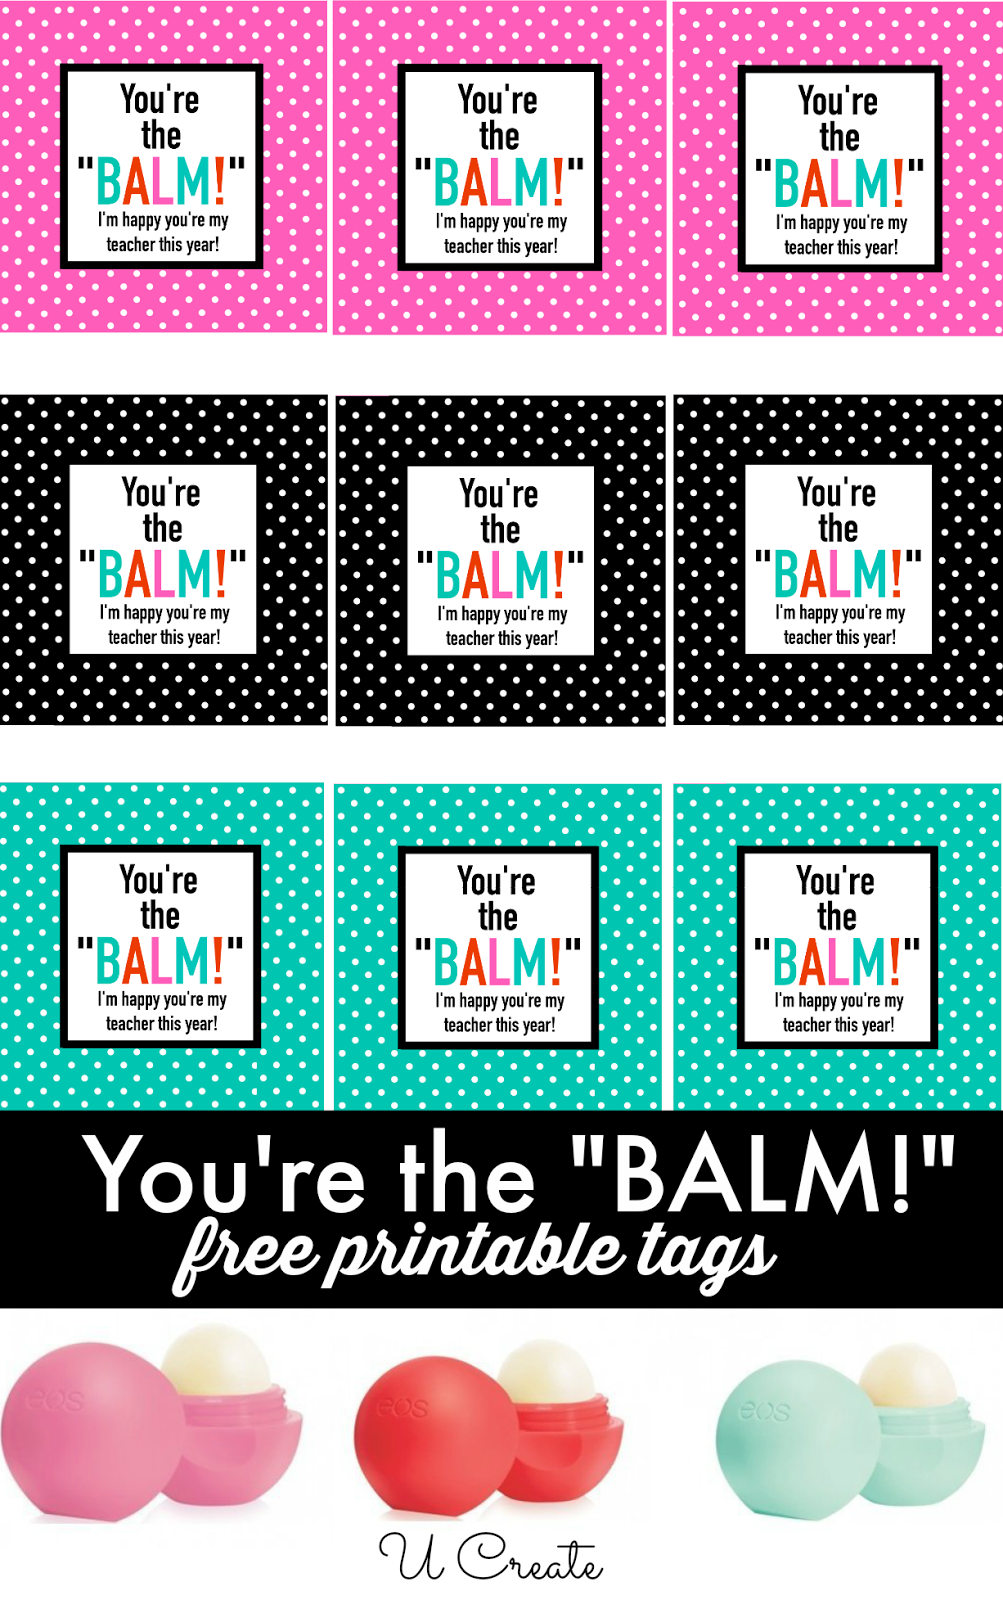 graphic about You're the Balm Free Printable known as Totally free Printables: Youre the balm Outstanding Strategies - Higher education and